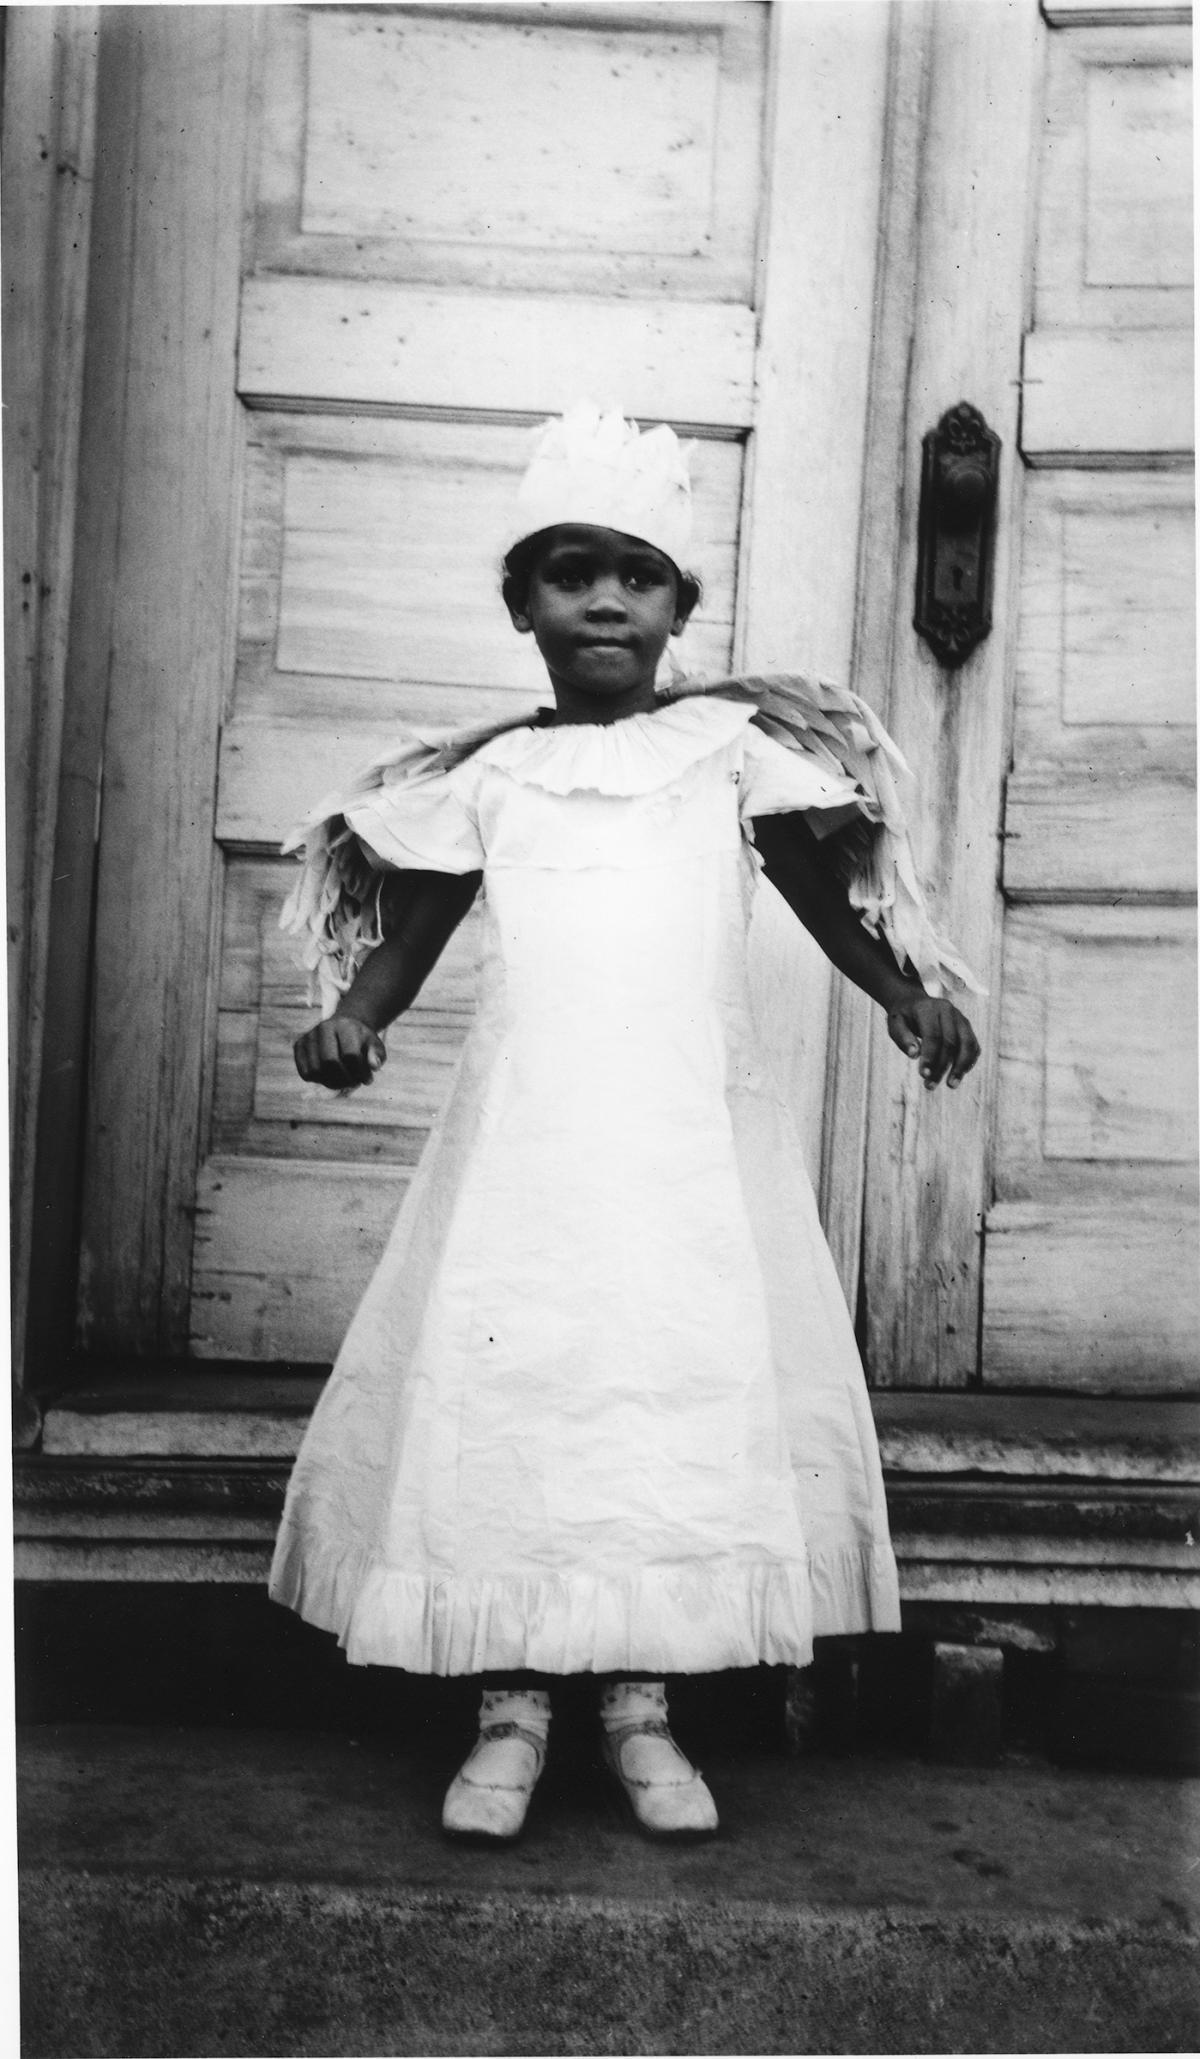 A young African American girl wears a white dress with wings sewn into the shoulders and a feathered flat cap